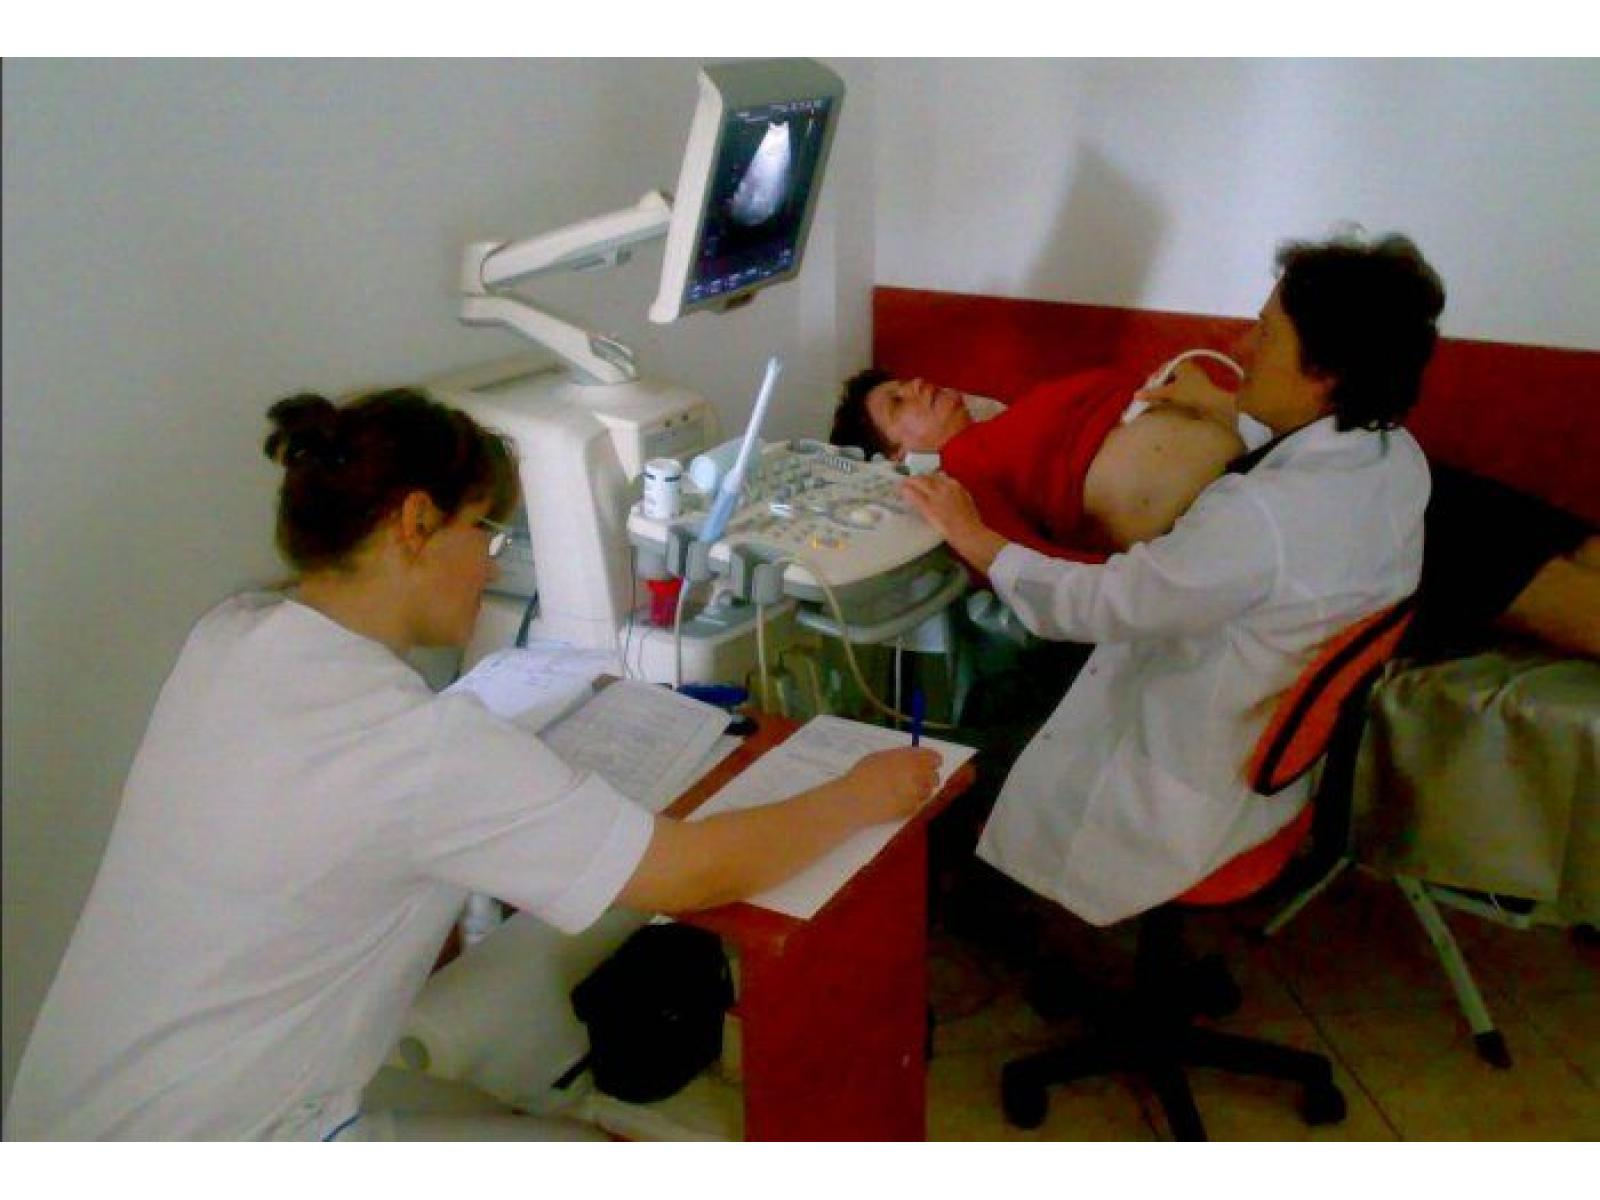 Gral Medical Ploiesti - Ploiesti_Clinica.jpg